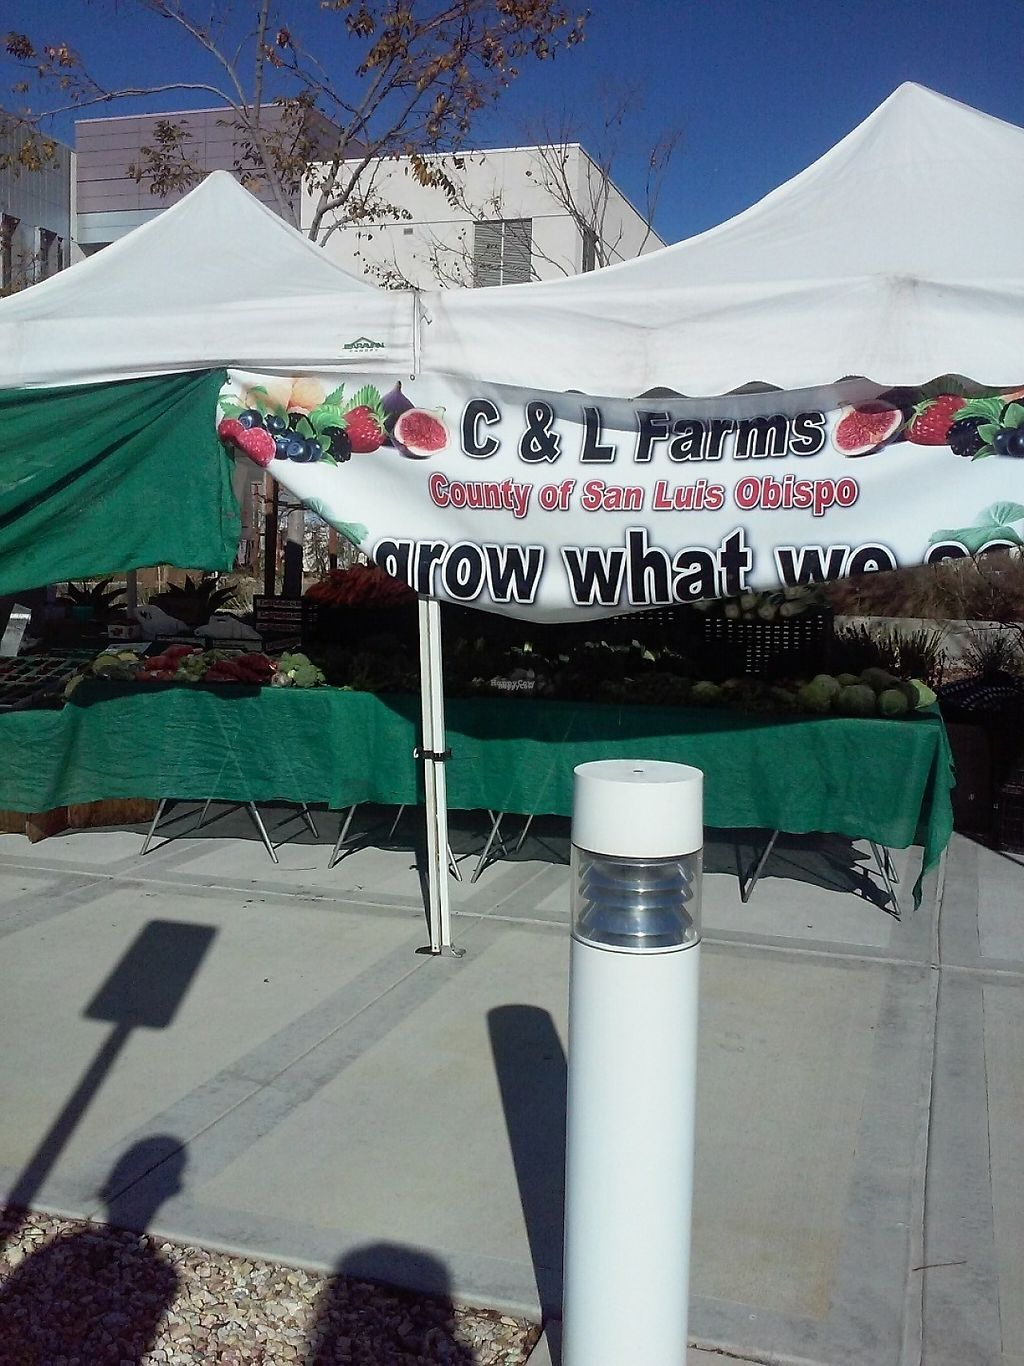 """Photo of Farmer's Market   by <a href=""""/members/profile/anastronomy"""">anastronomy</a> <br/>Vendor who sells produce grown in the county of San Luis Obispo  <br/> December 30, 2016  - <a href='/contact/abuse/image/84750/206352'>Report</a>"""